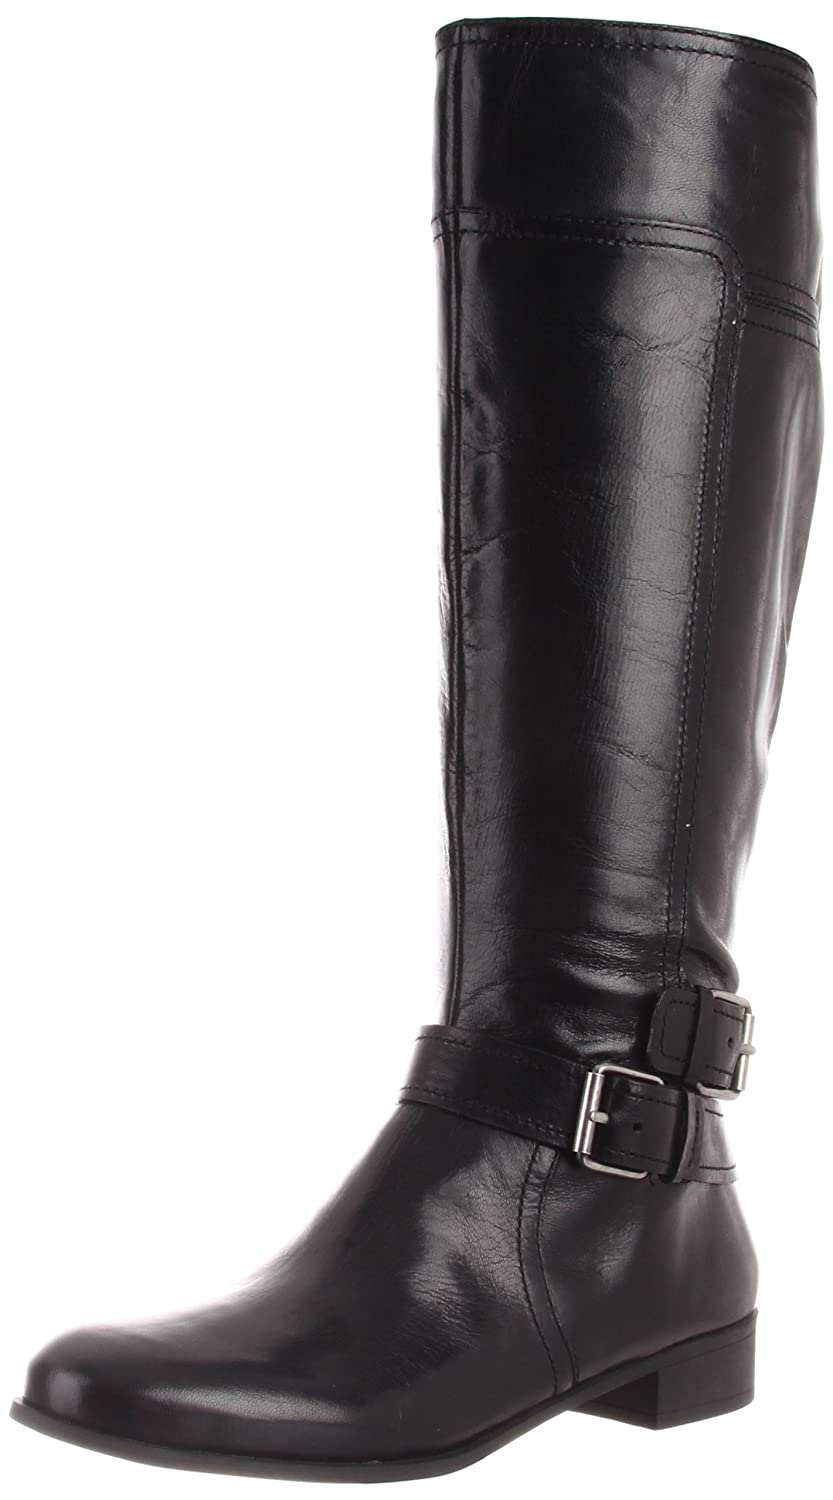 Nine West Women's Shiza Knee-High Boot,Black Leather,9 M US ( $20 off $100 Discount)